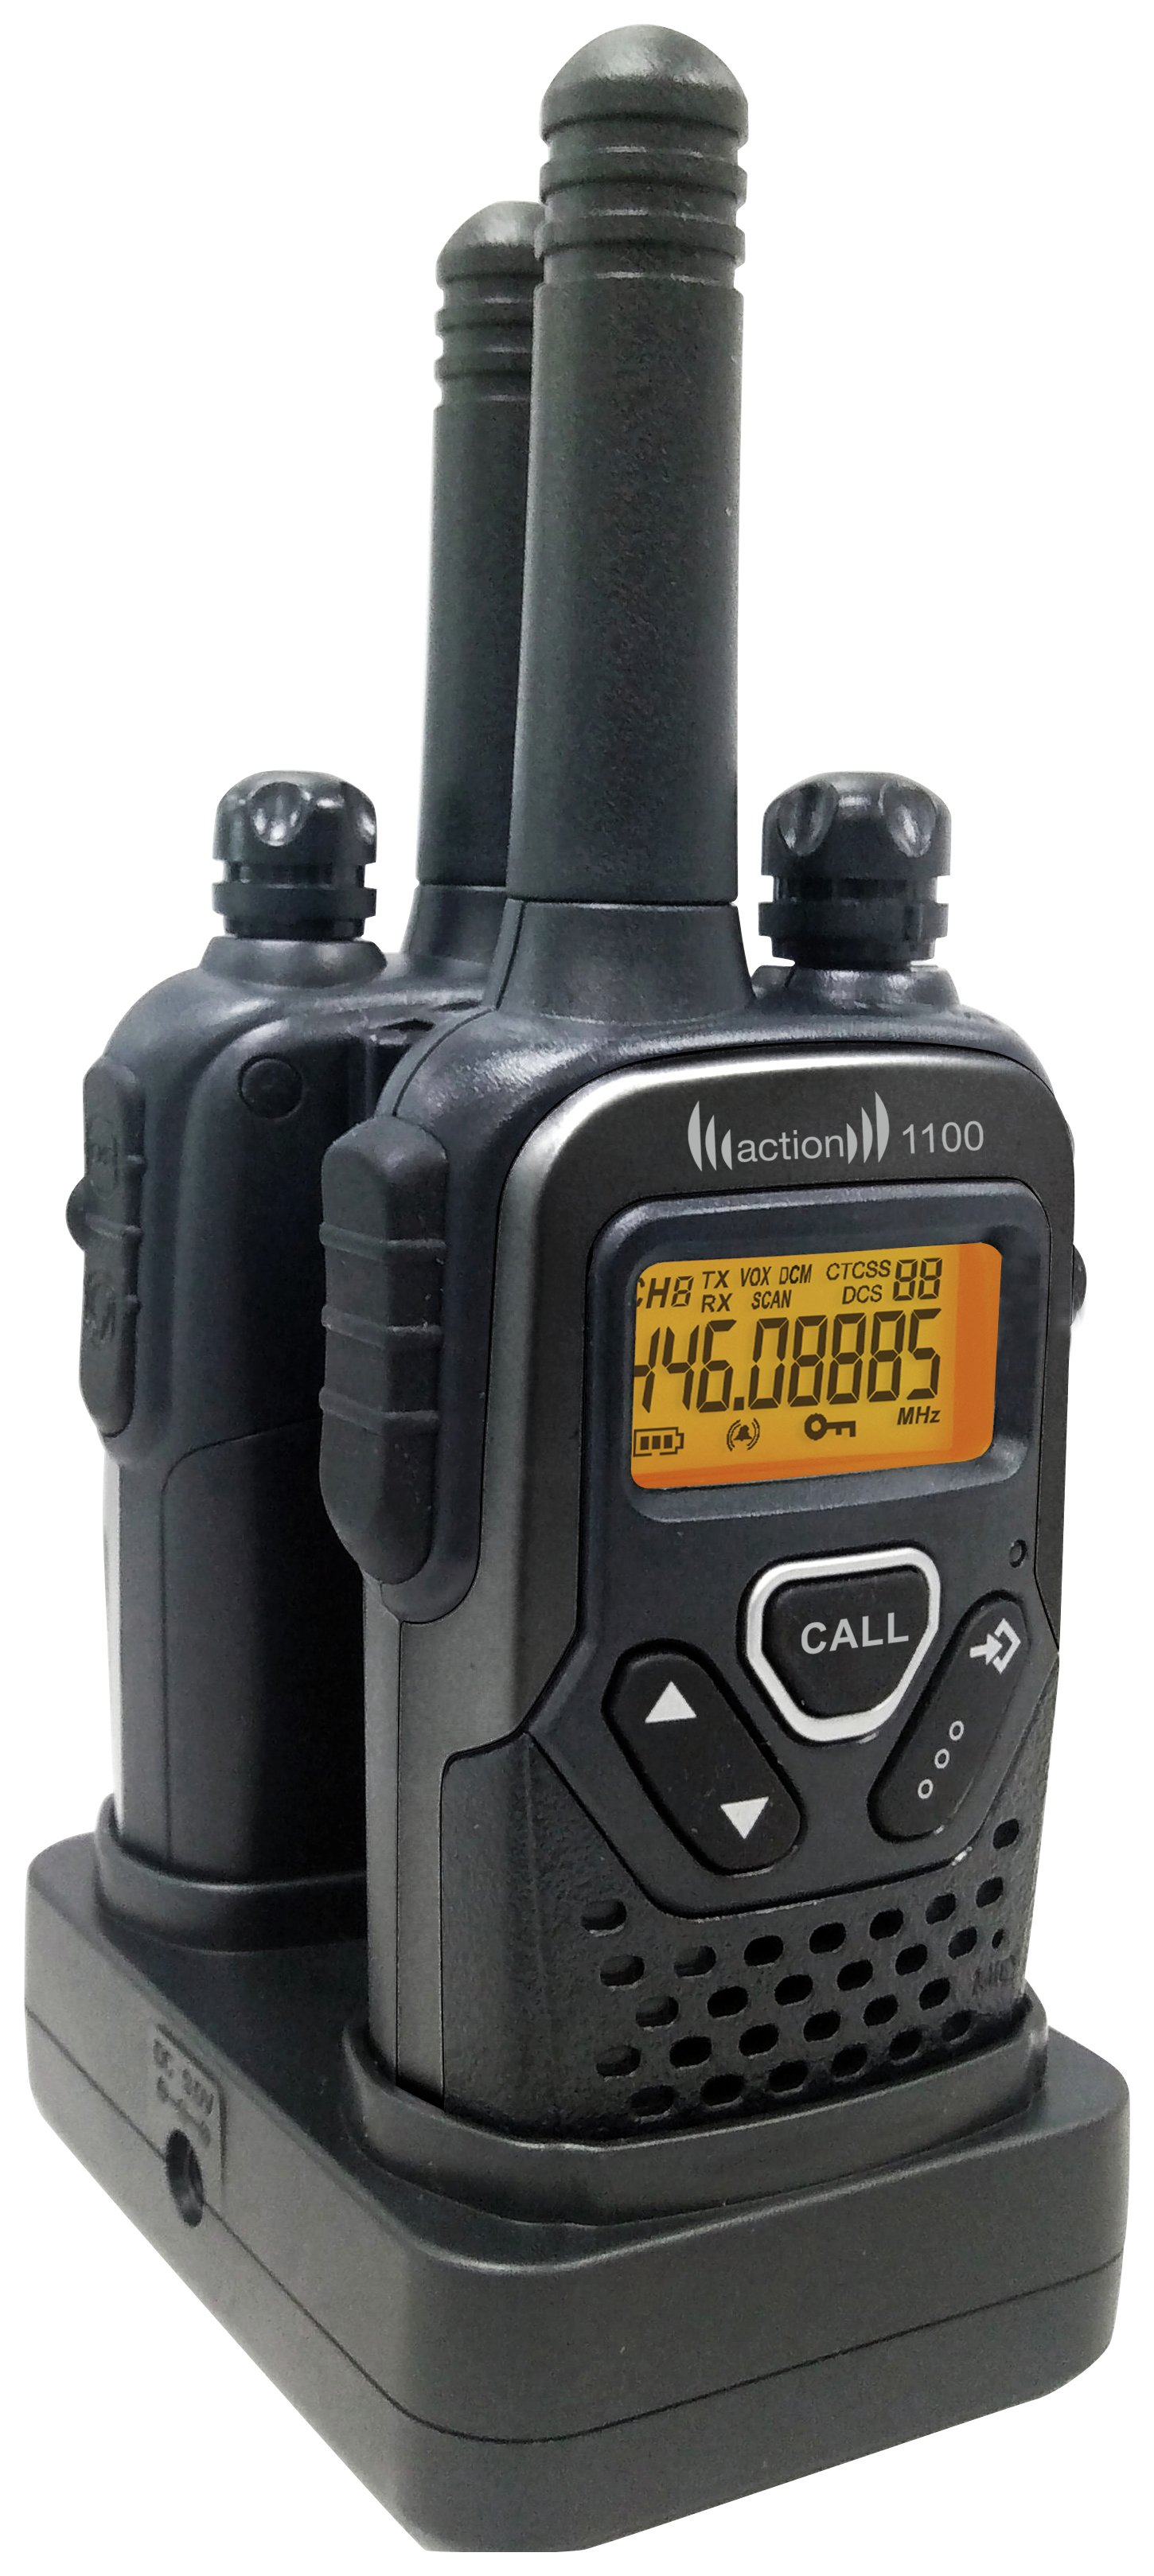 Image of Binatone - Action 1100 Twin 2 Way Radio